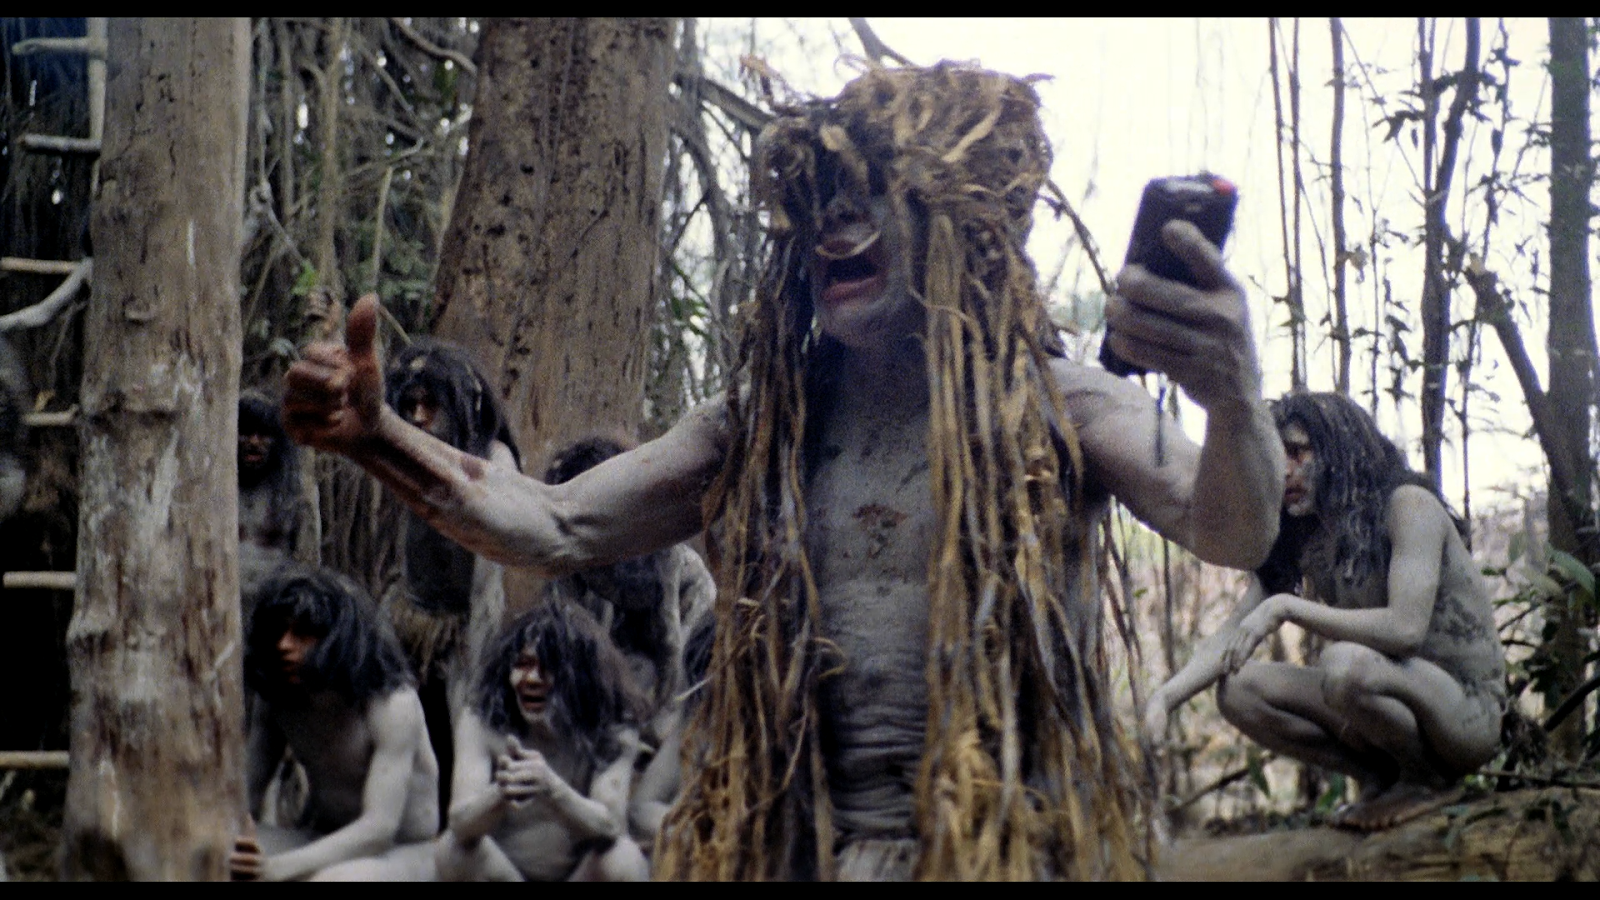 Cannibal tribe holocaust